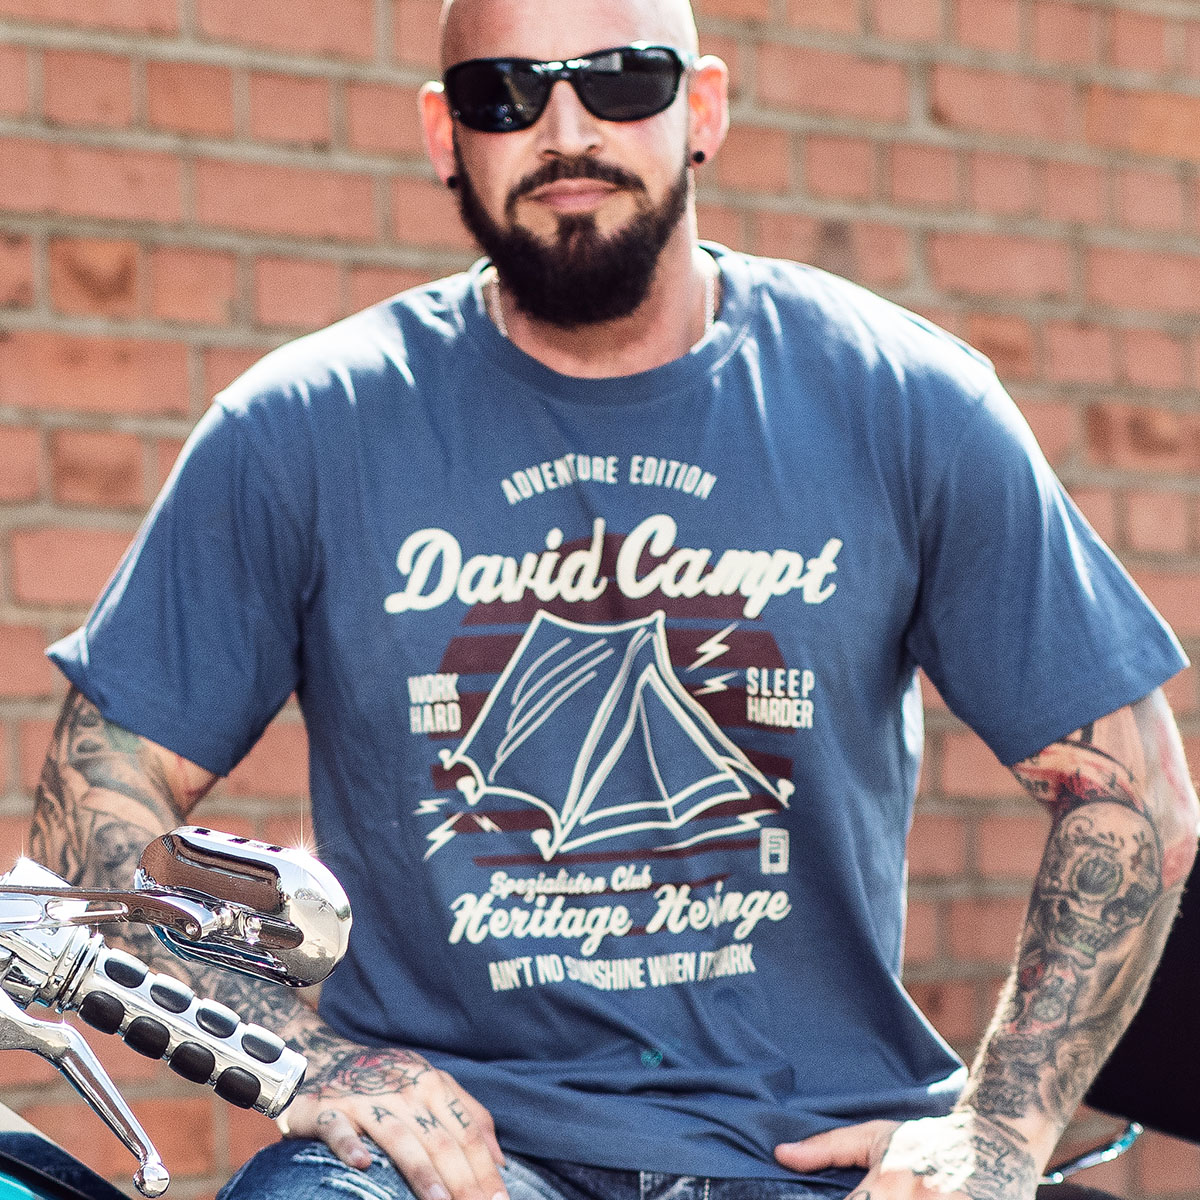 David Campt - Fake Fashion T-Shirt.jpg